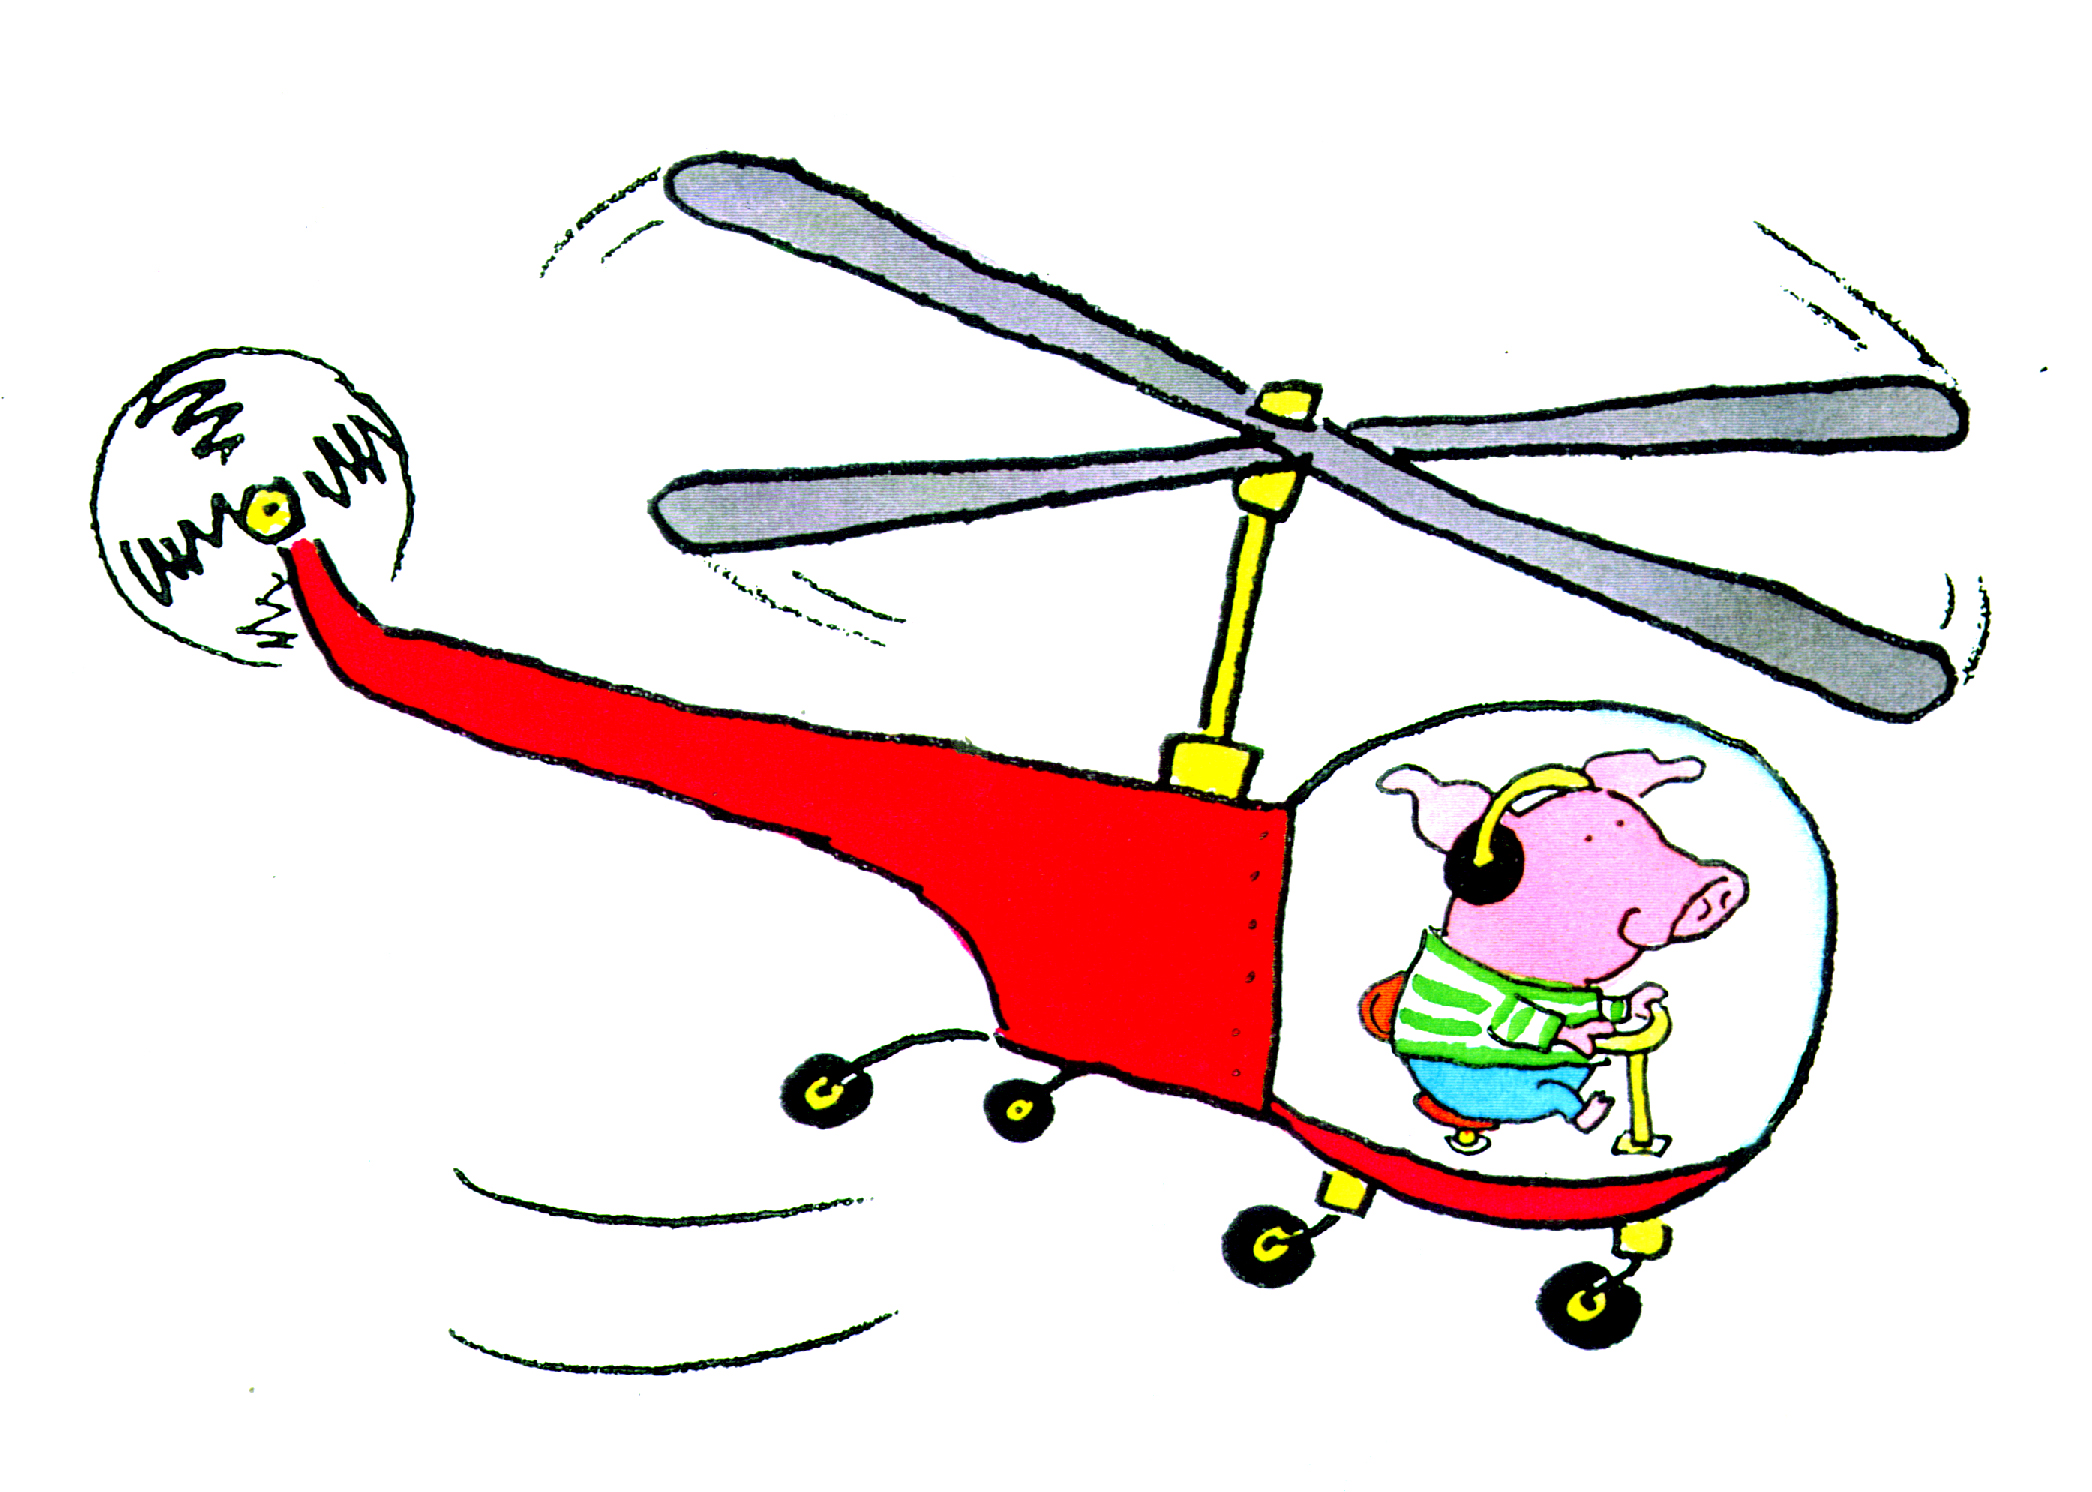 Piggy helicopter copy.jpg